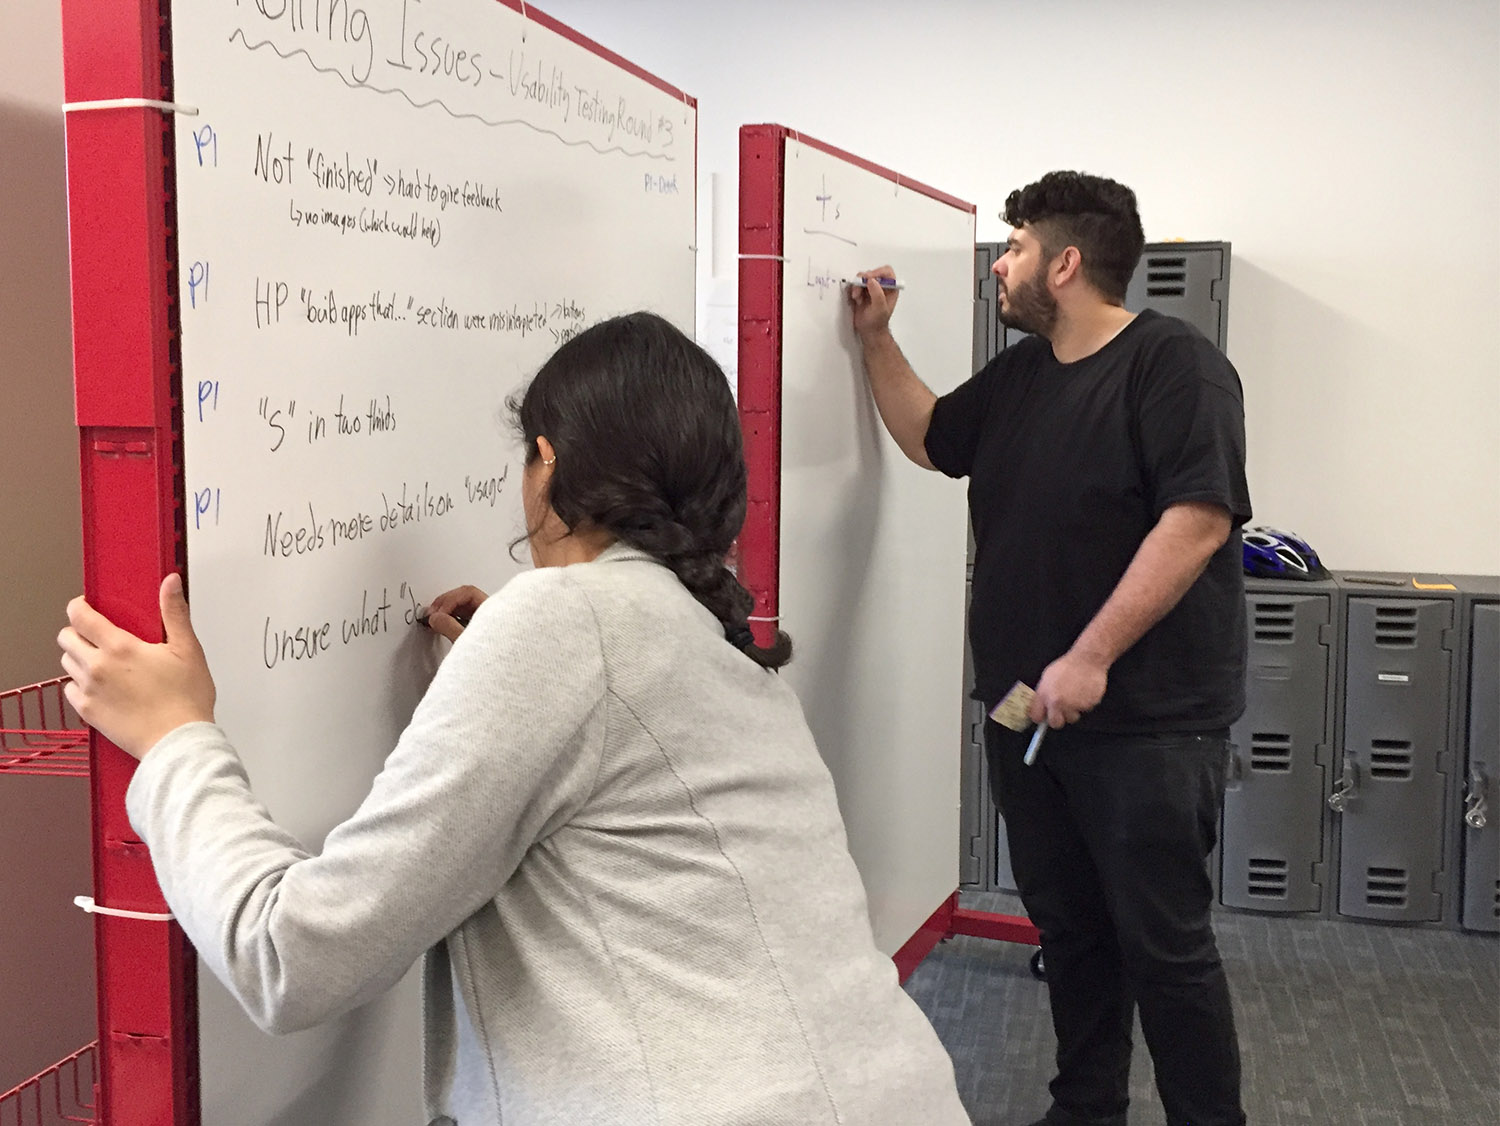 Two students writing analysis information on a whiteboard for other team members.